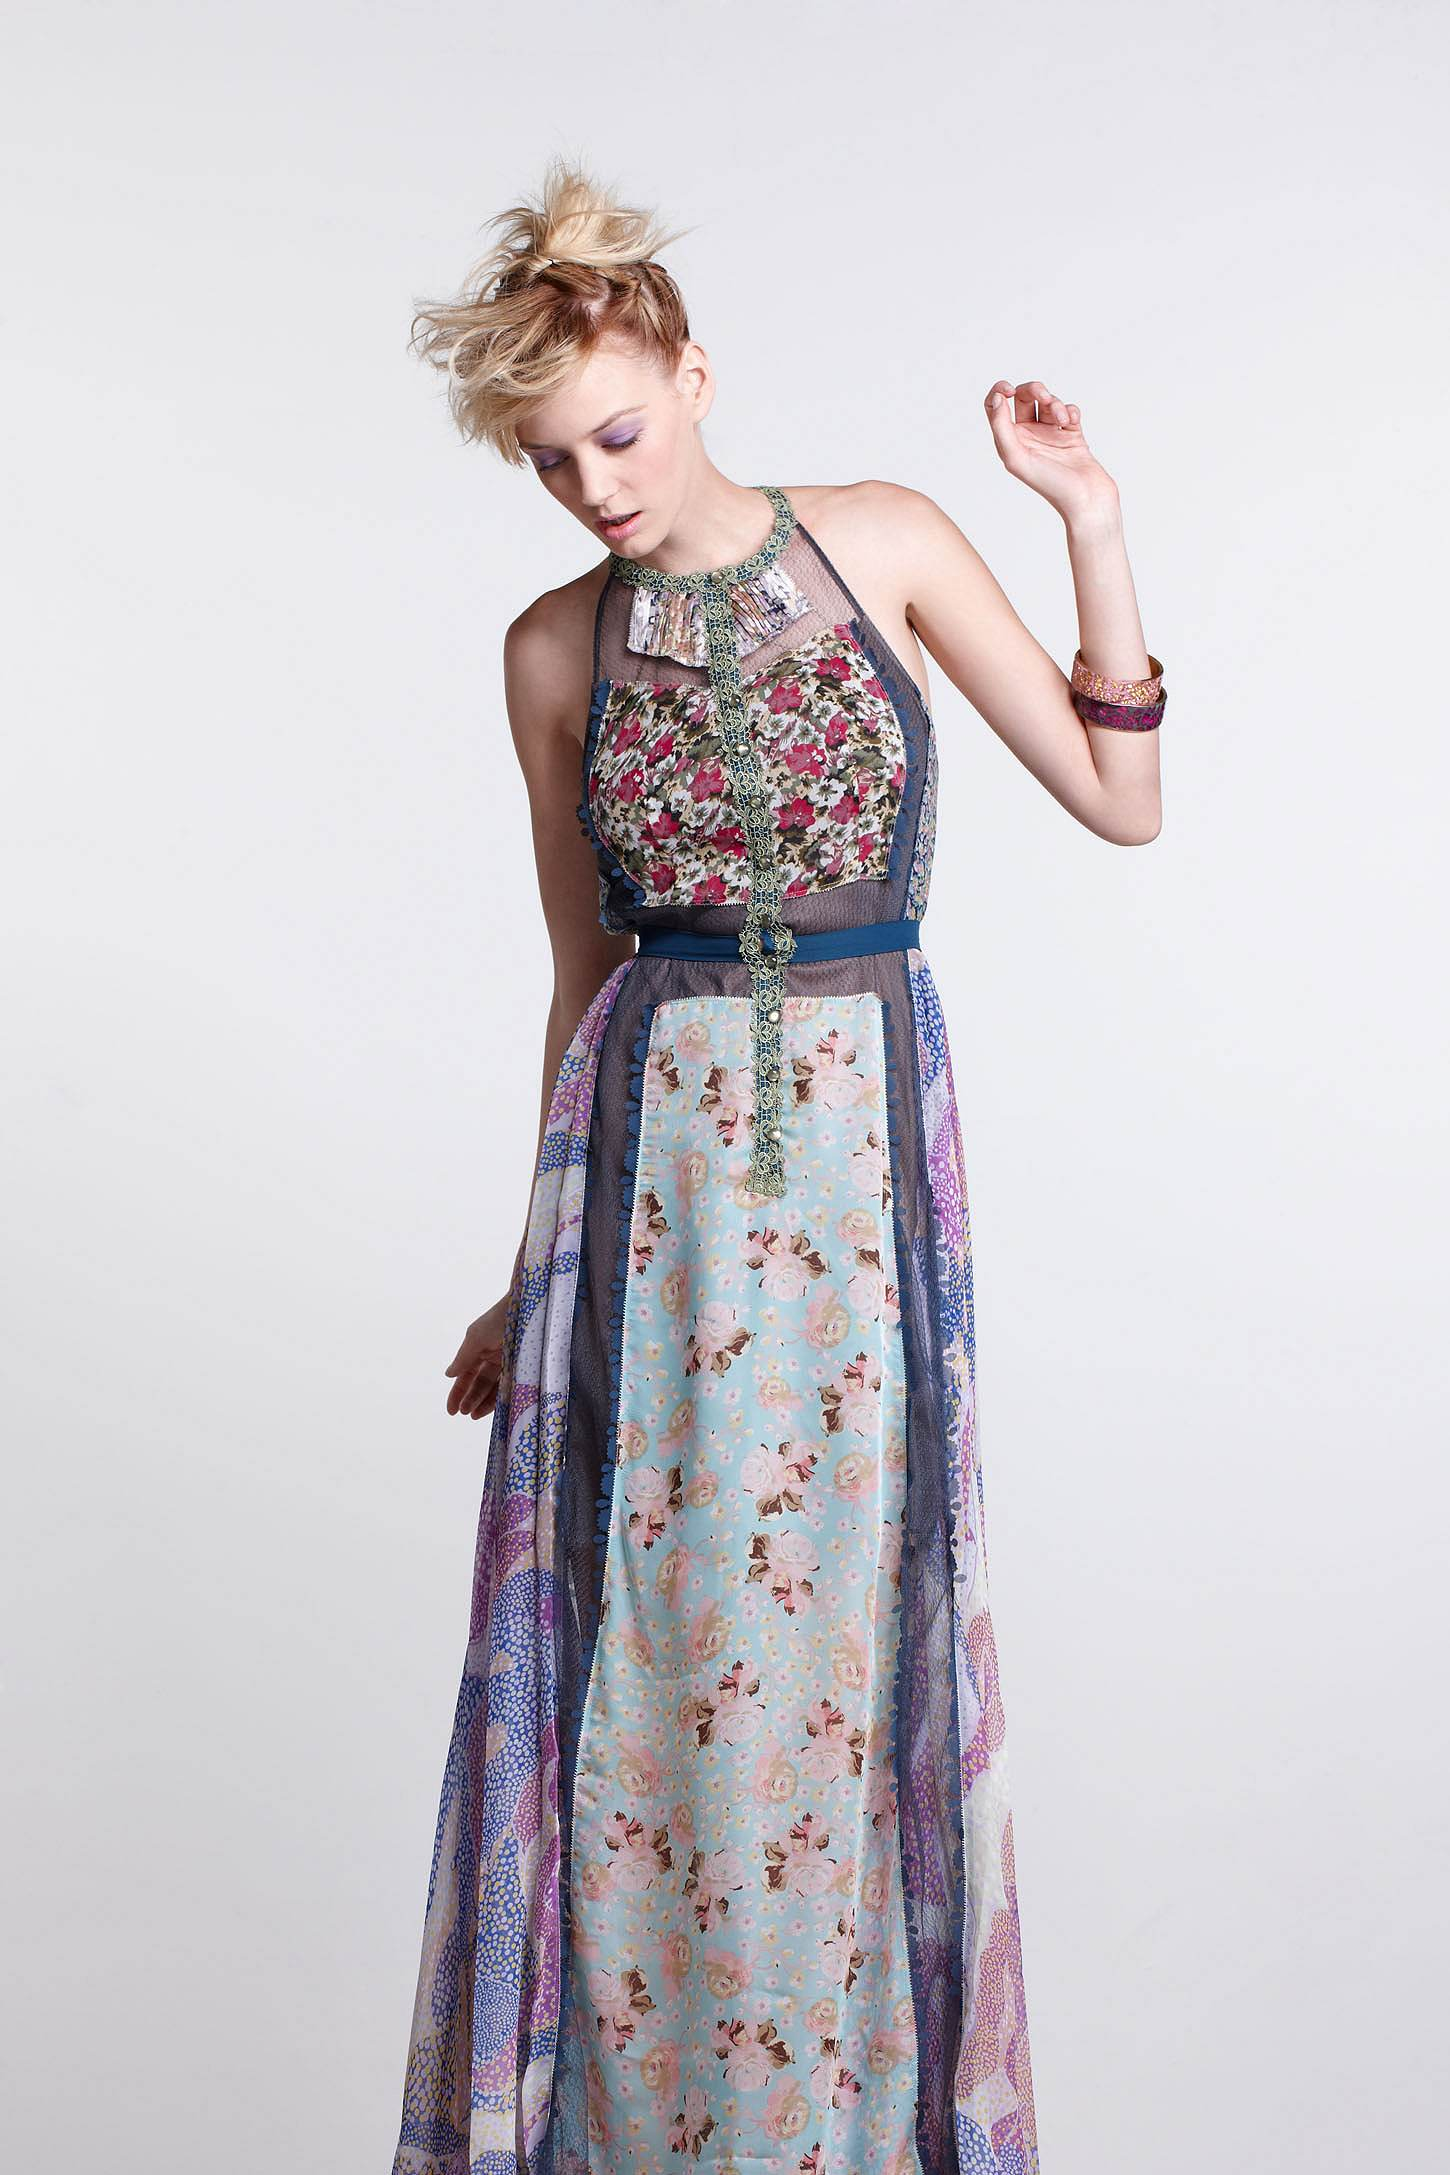 Wilderflora Patchwork Maxi Dress by Byron Lars